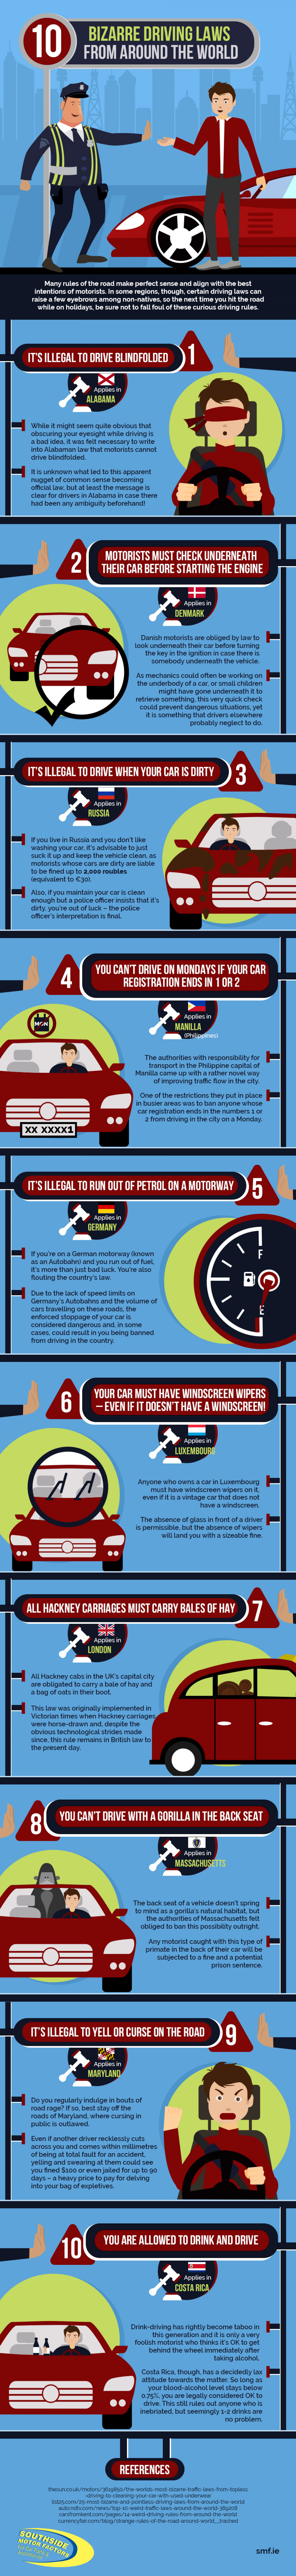 10 Bizarre Driving Laws from Around the World [Infographic] Infographic